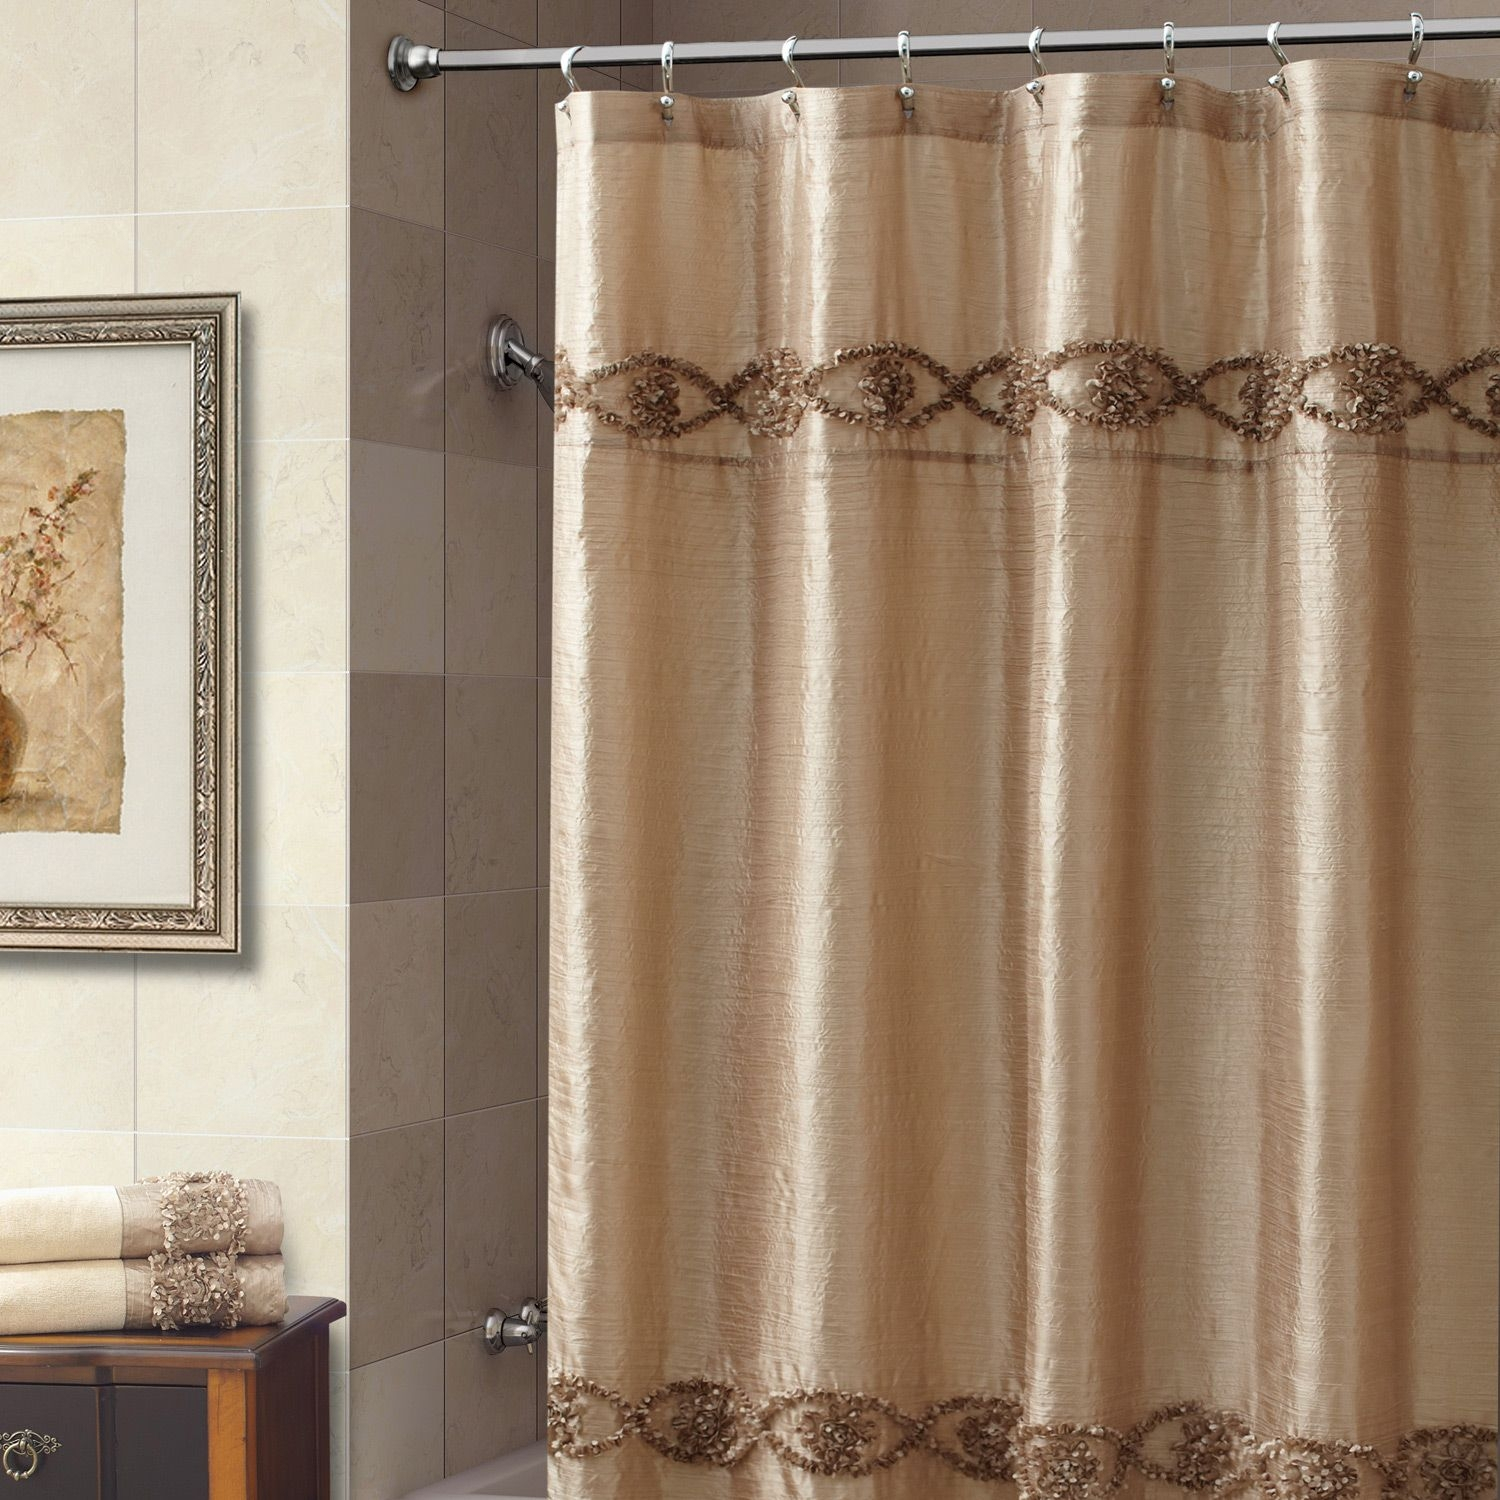 84 Tall Shower Curtain • Shower Curtains Ideas